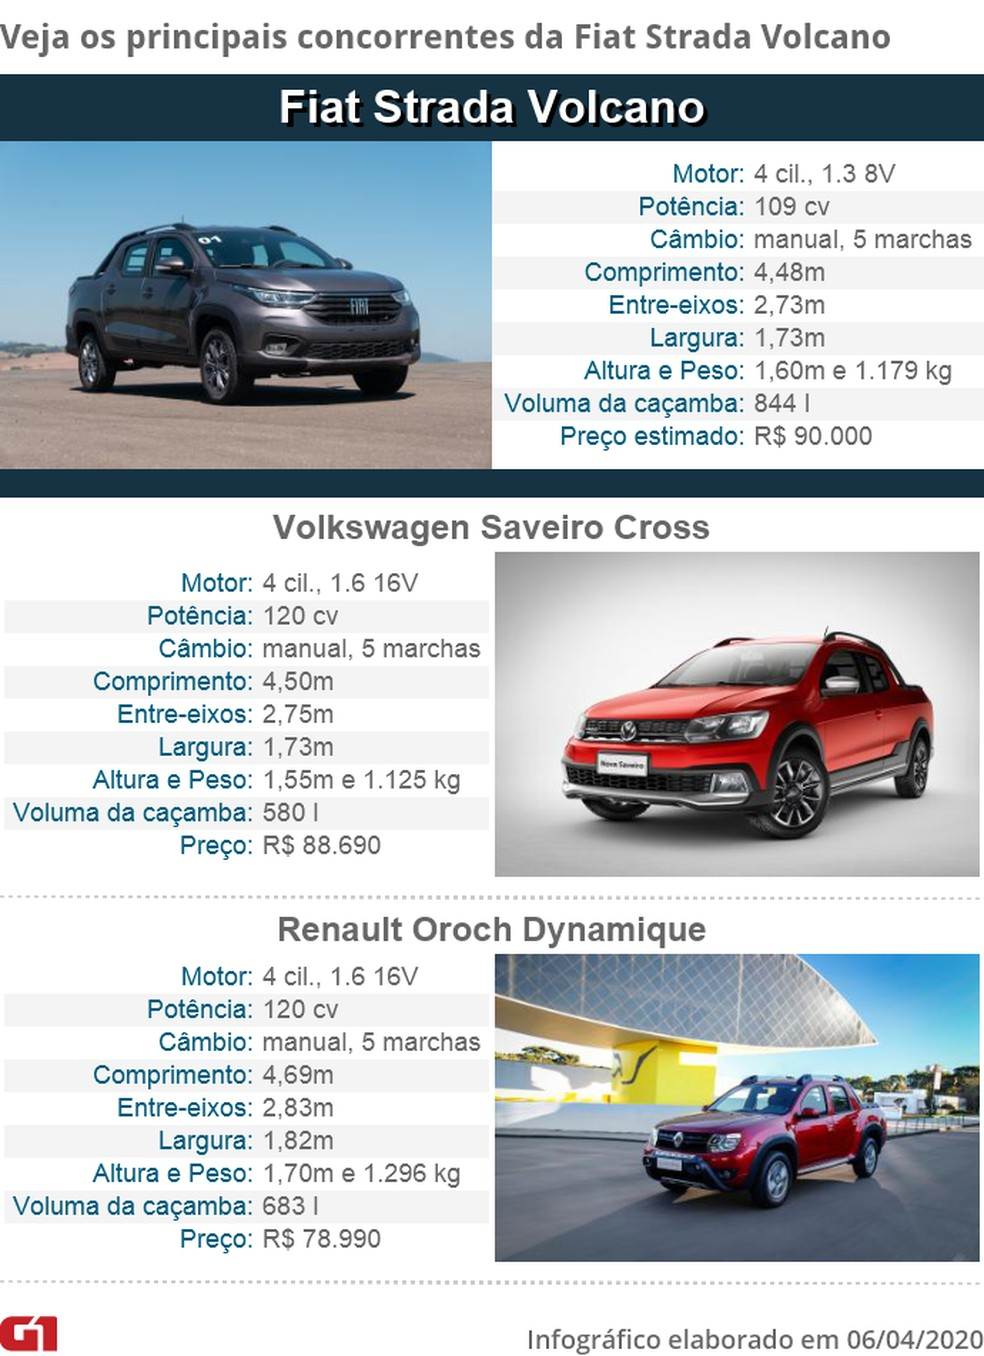 Table of competitors of Fiat Strada - Photo: Photos: Marcelo Brandt / G1 and disclosure